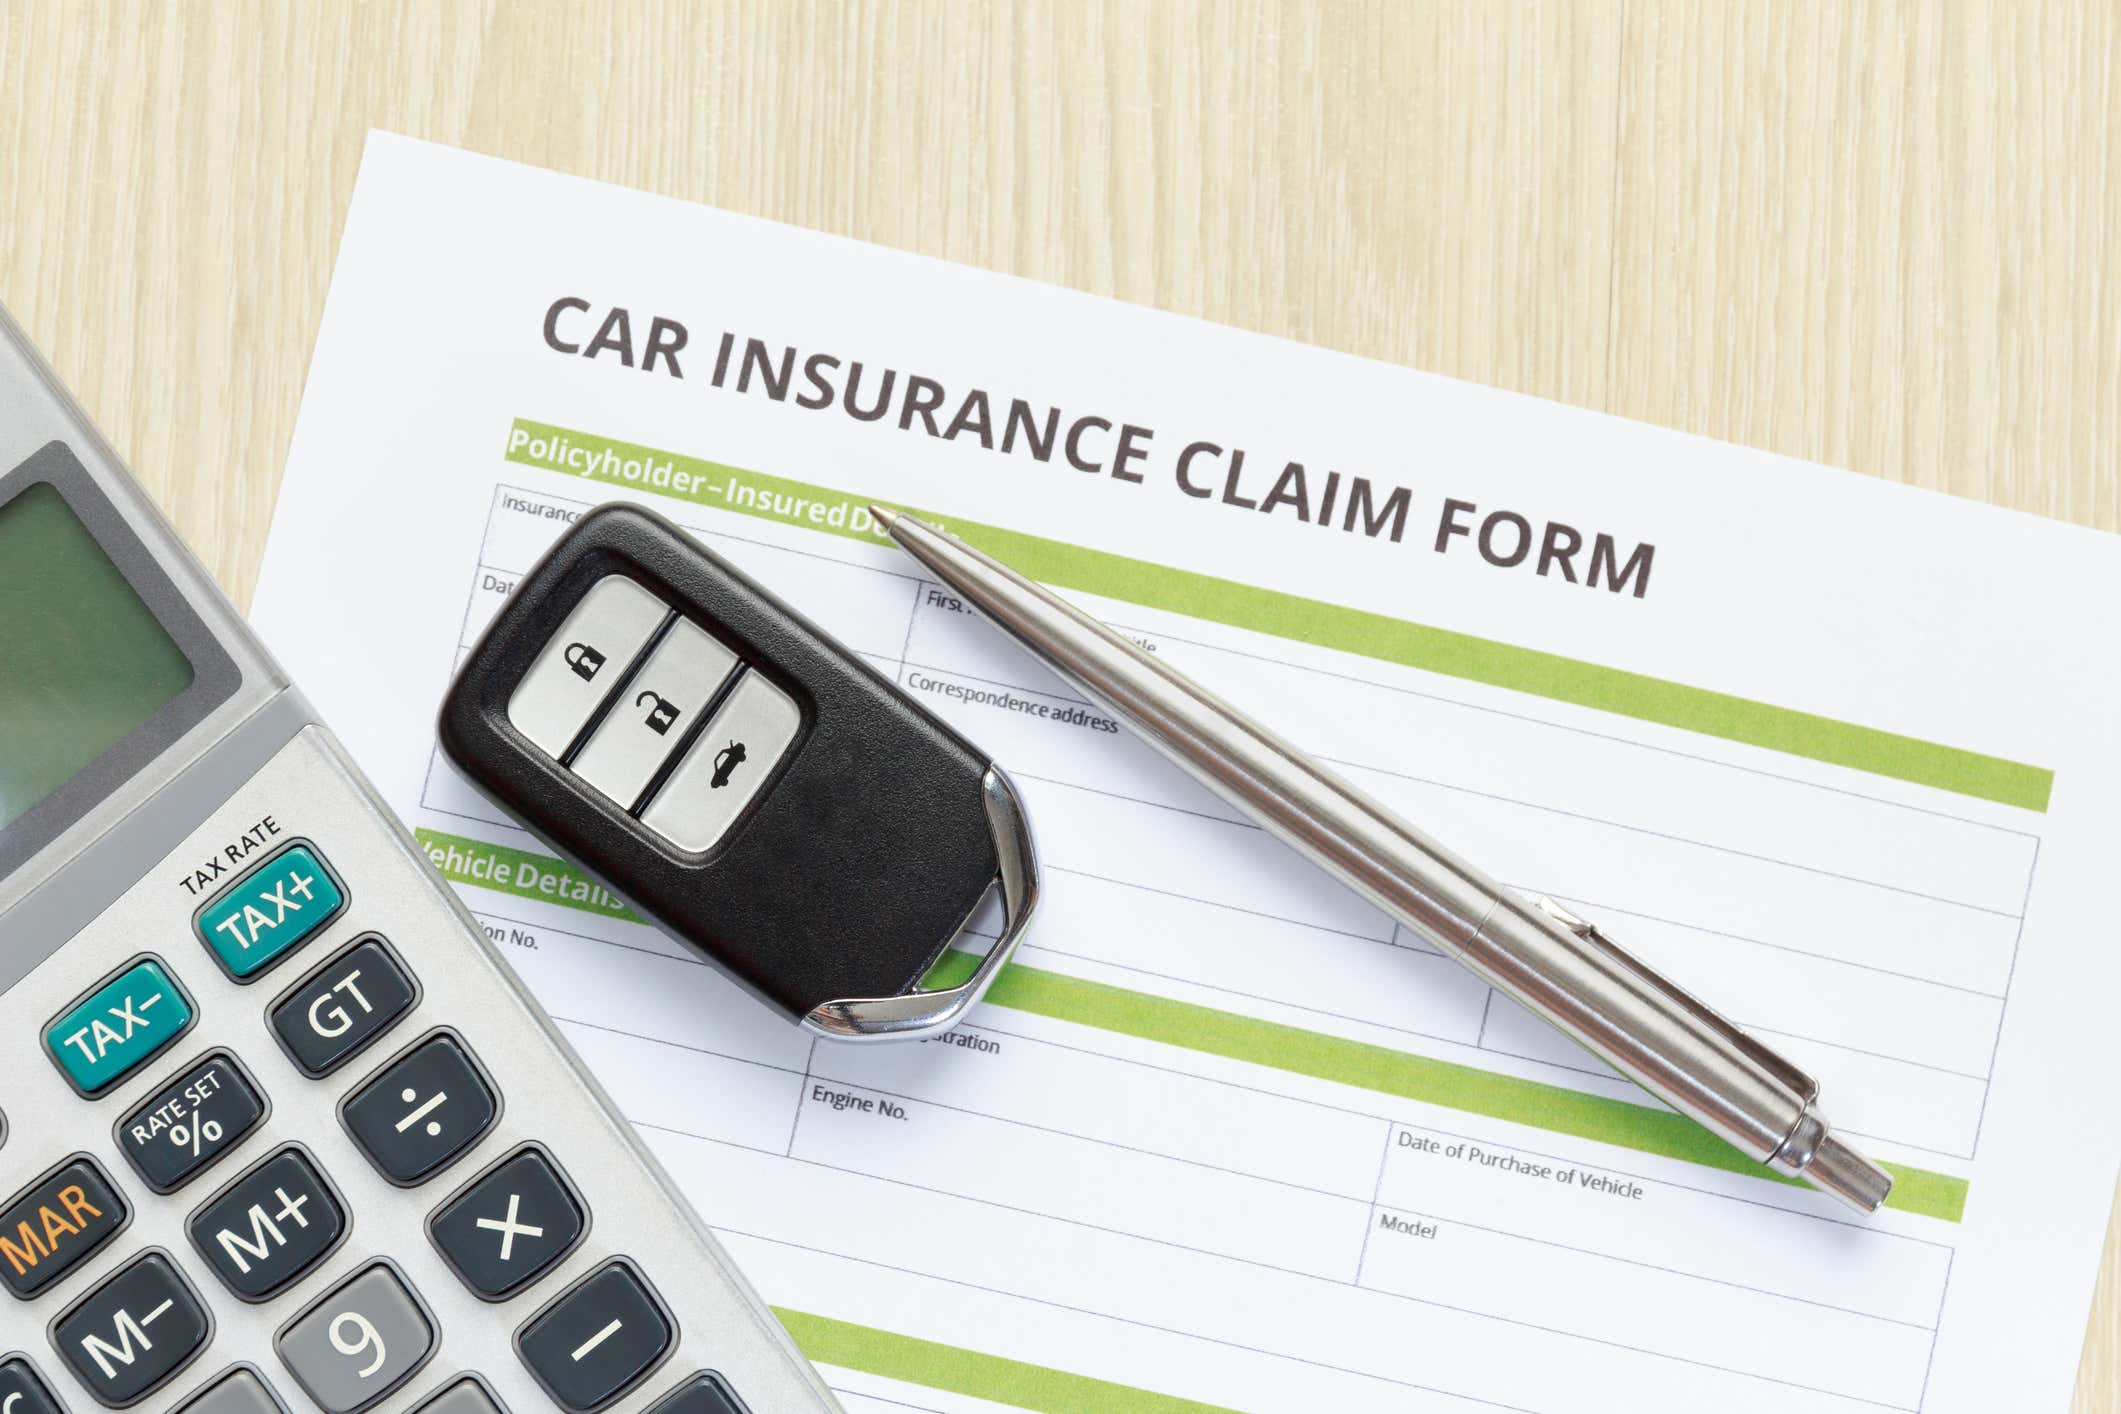 A car insurance claims form